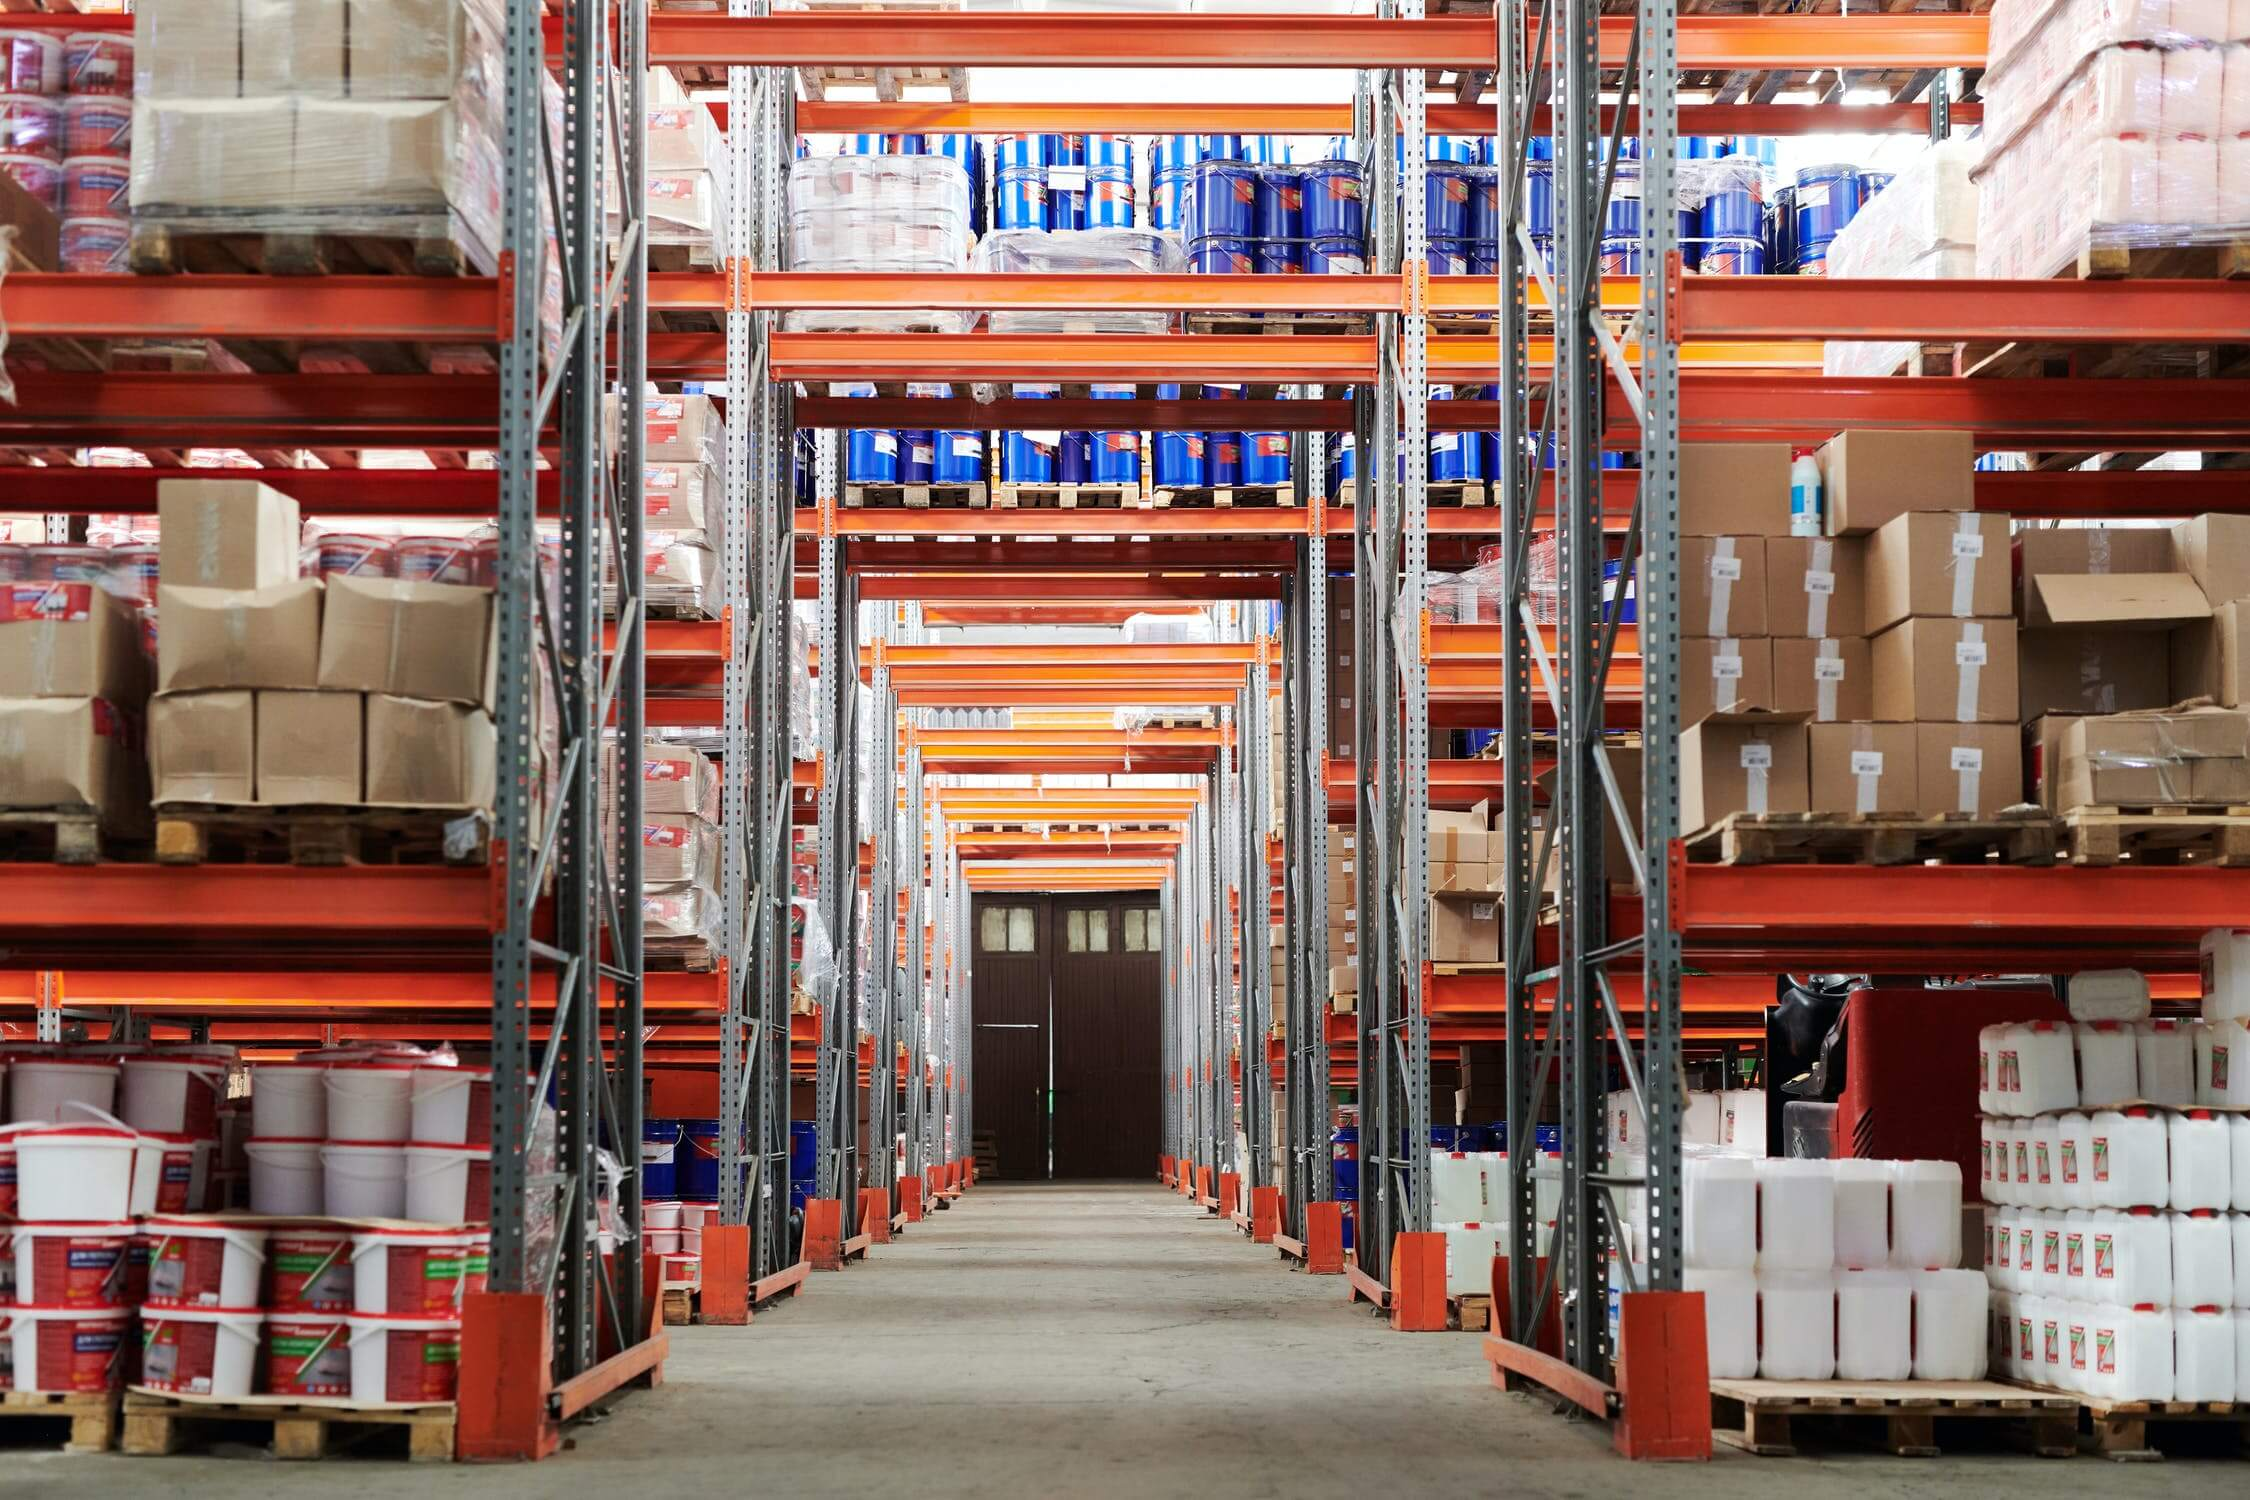 commercial floor cleaning warehouses